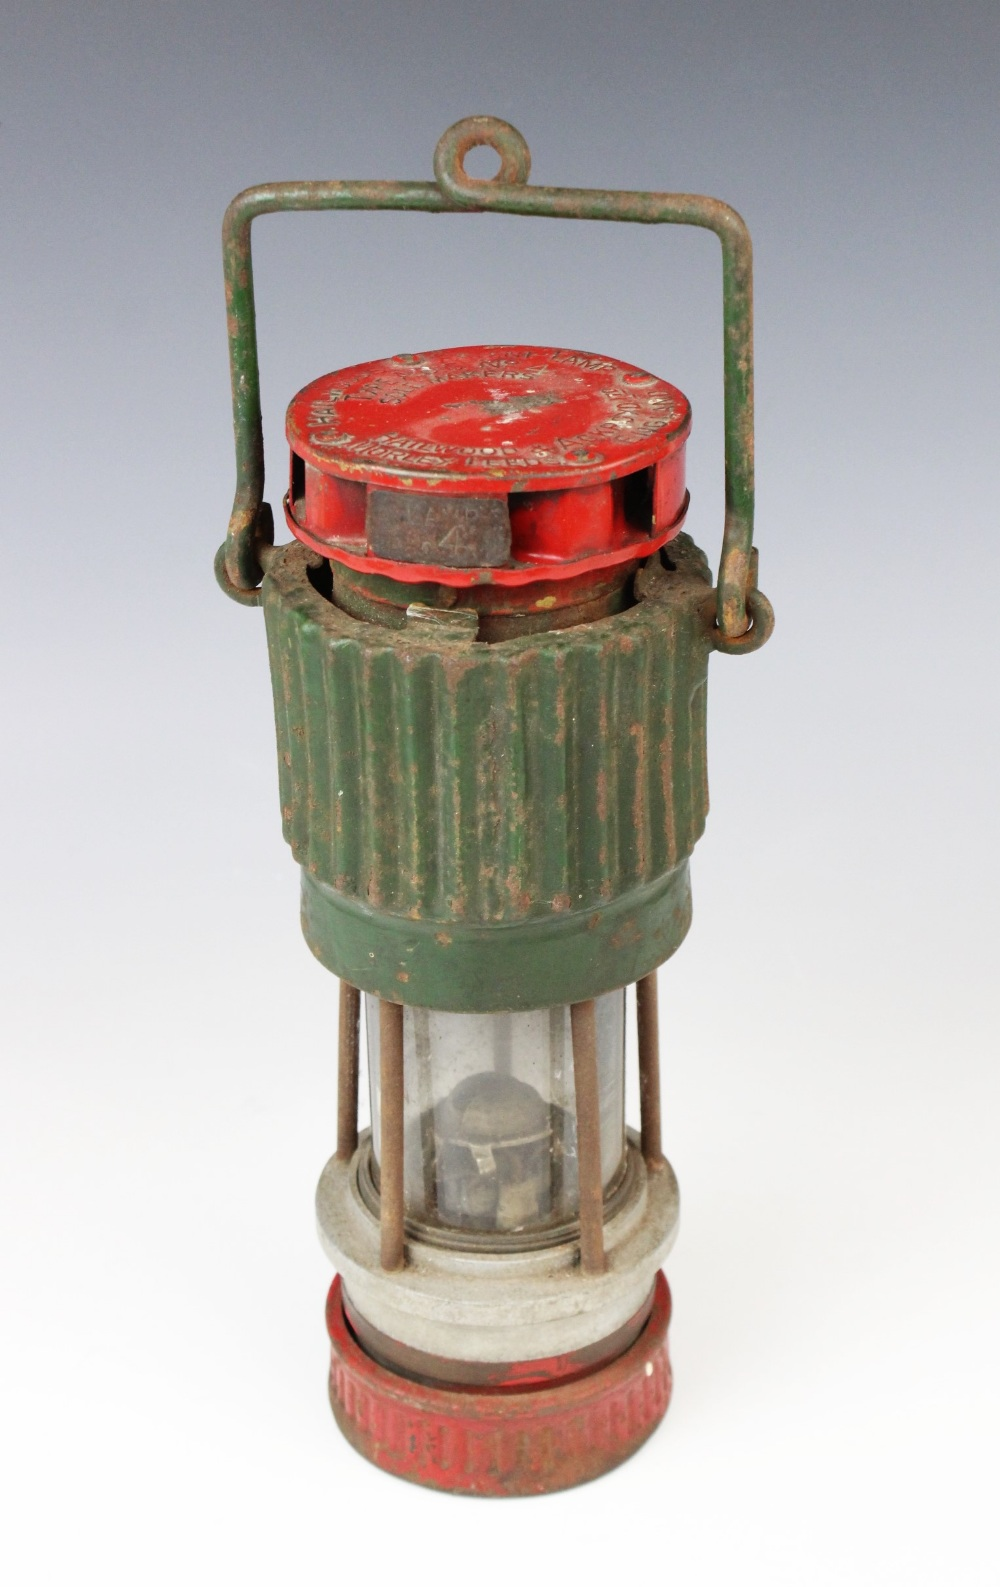 A vintage Hailwood's Patent miner's lamp 'Type ADC No 4', 20th century, red and green painted with